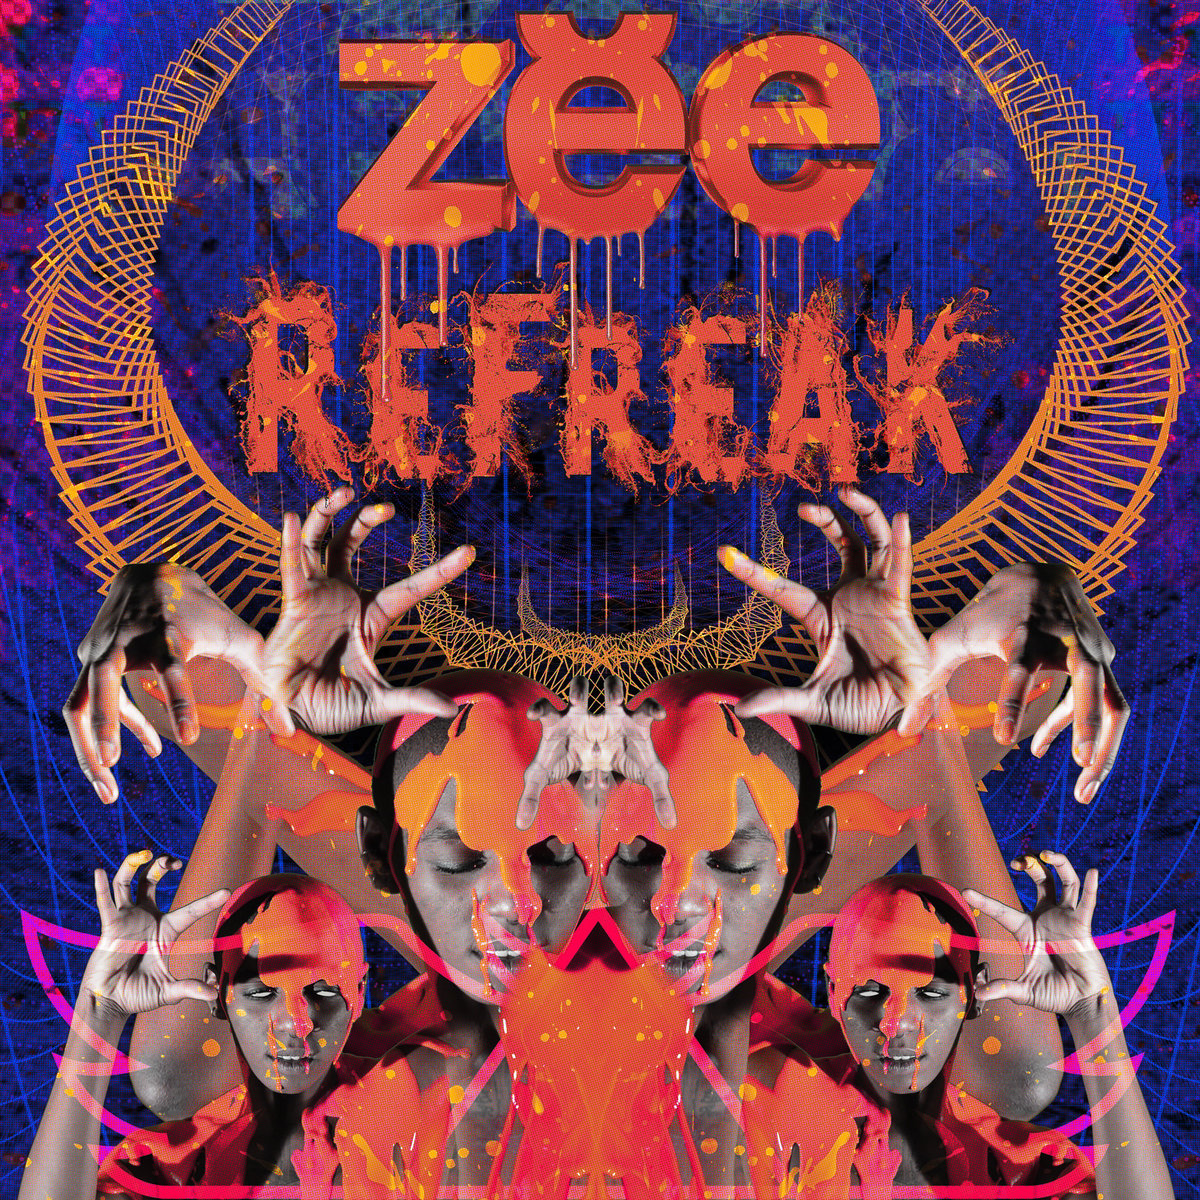 Zebbler Encanti Experience - Perceptronium (Of The Trees Remix) @ 'ReFreak' album (electronic, bass)